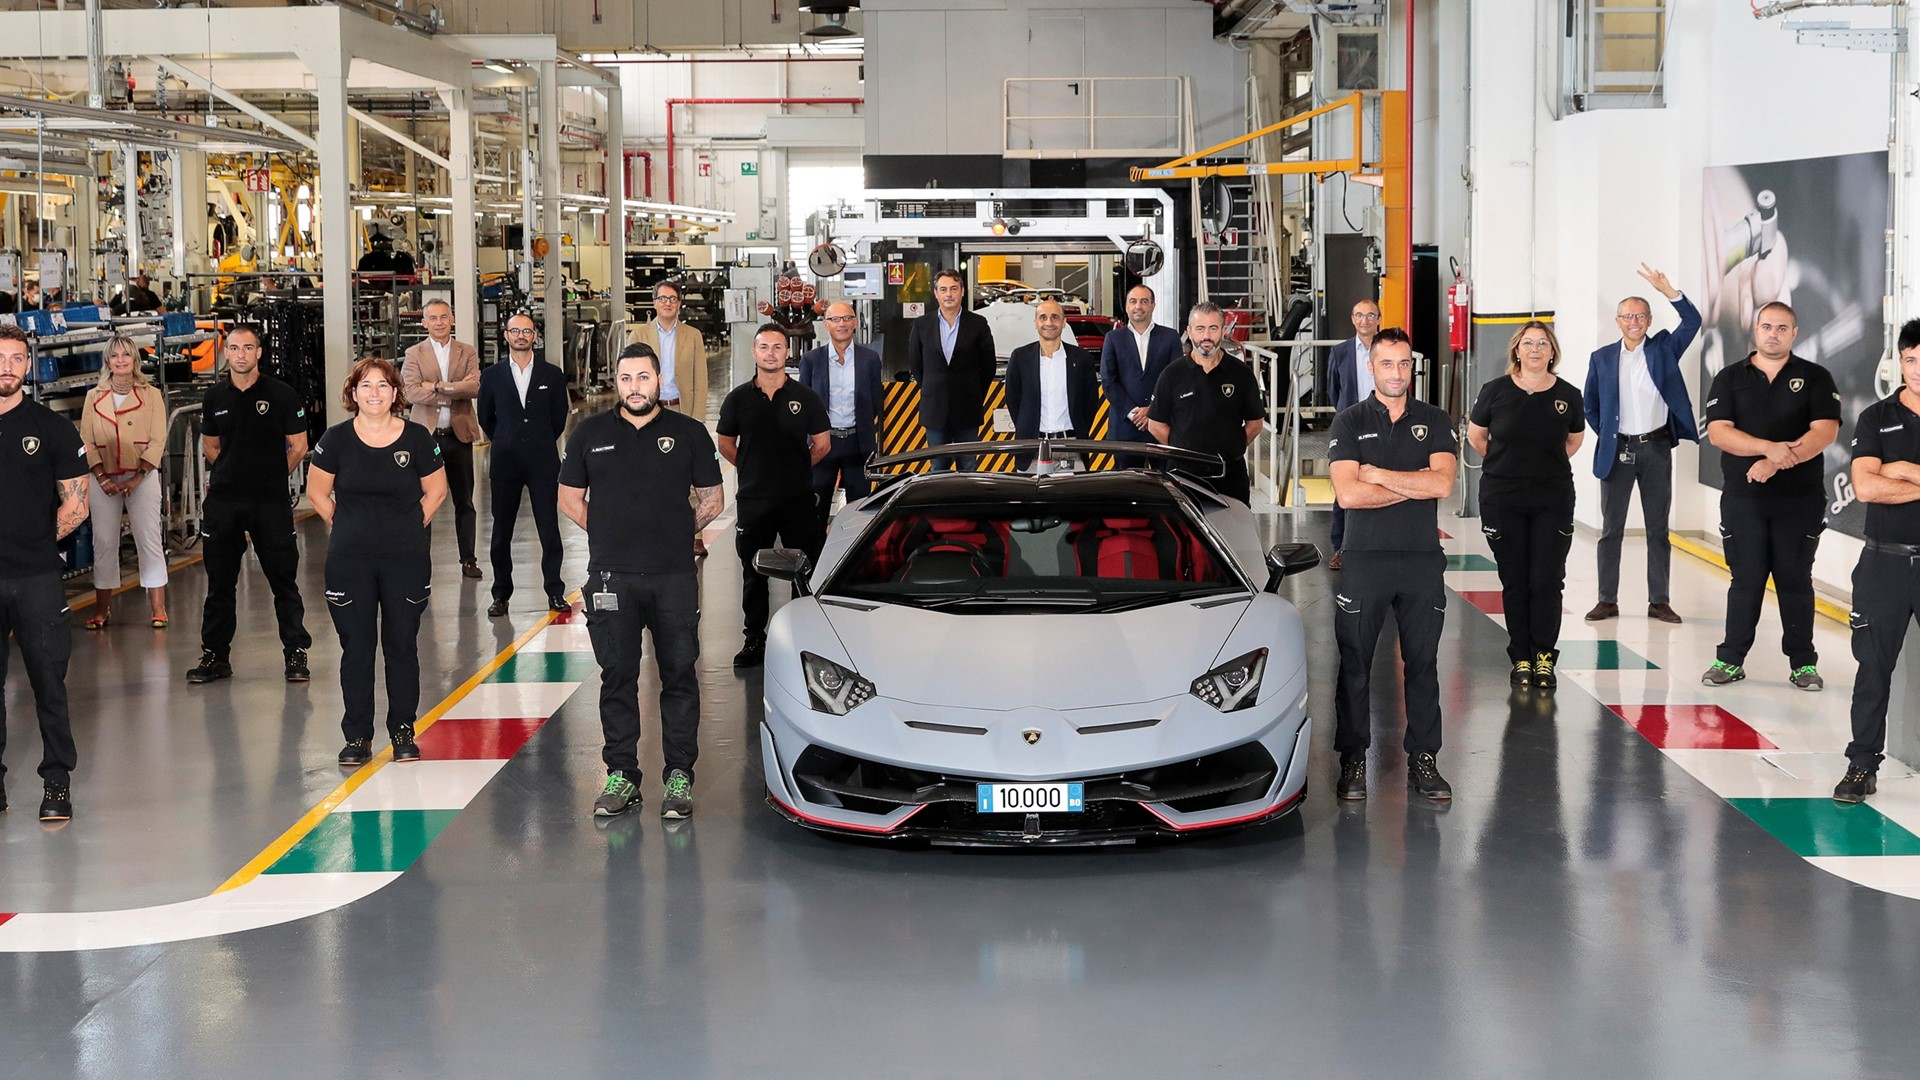 New production record: Automobili Lamborghini celebrates the 10,000th Aventador - Image 7